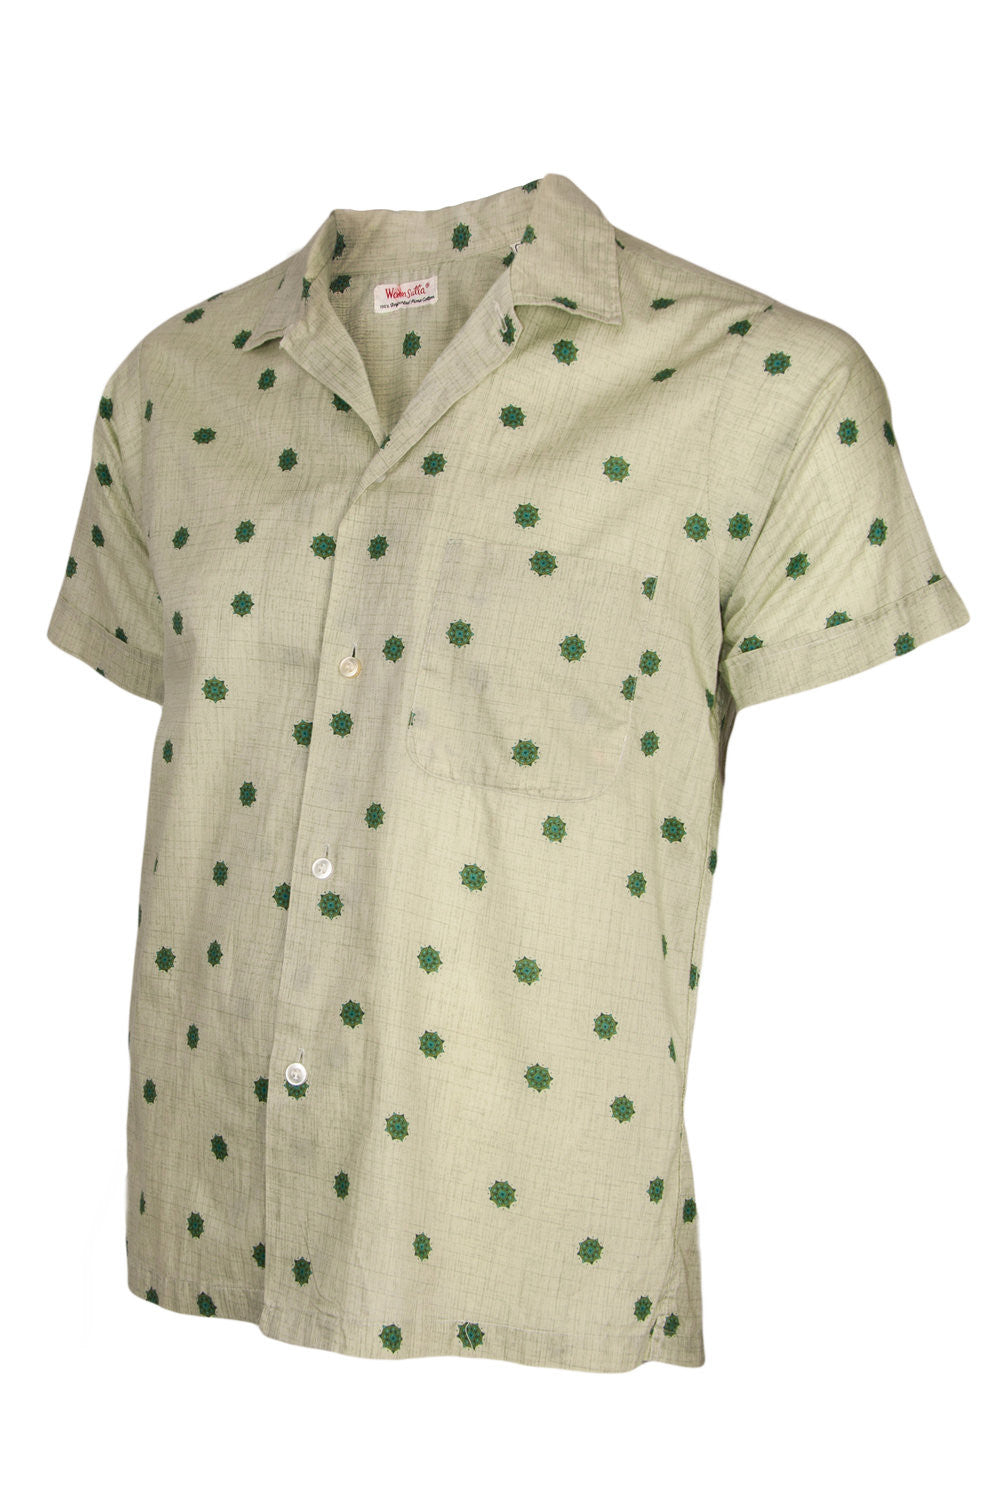 Vintage green short sleeve button up